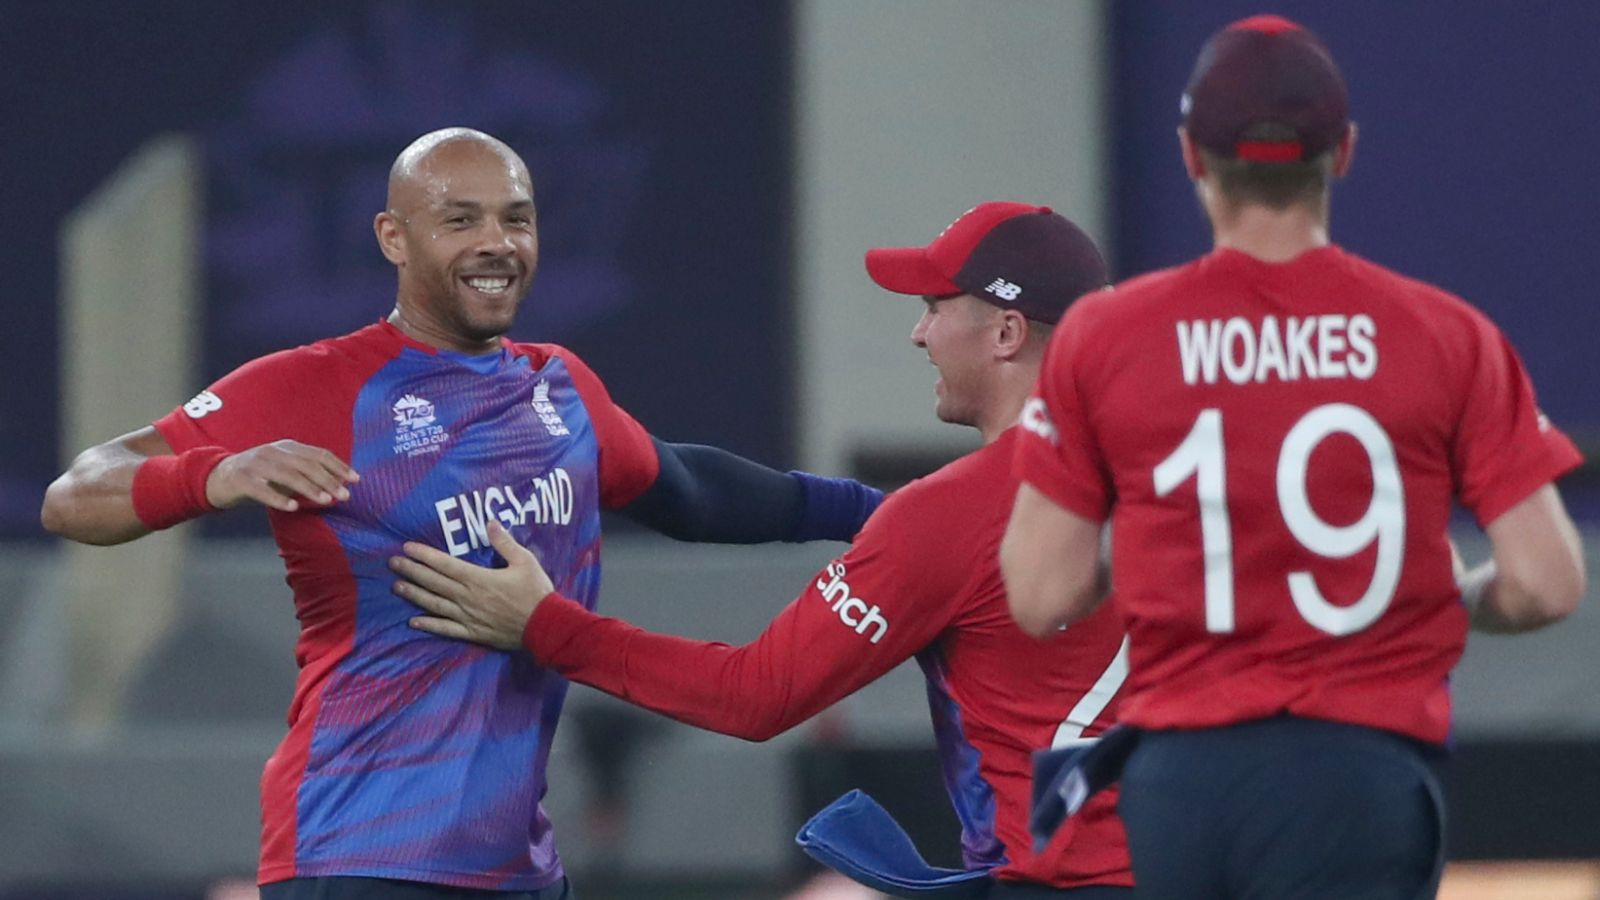 T20 World Cup: Chris Silverwood hails 'ruthless' England and 'dangerous' Moeen Ali after win over West Indies